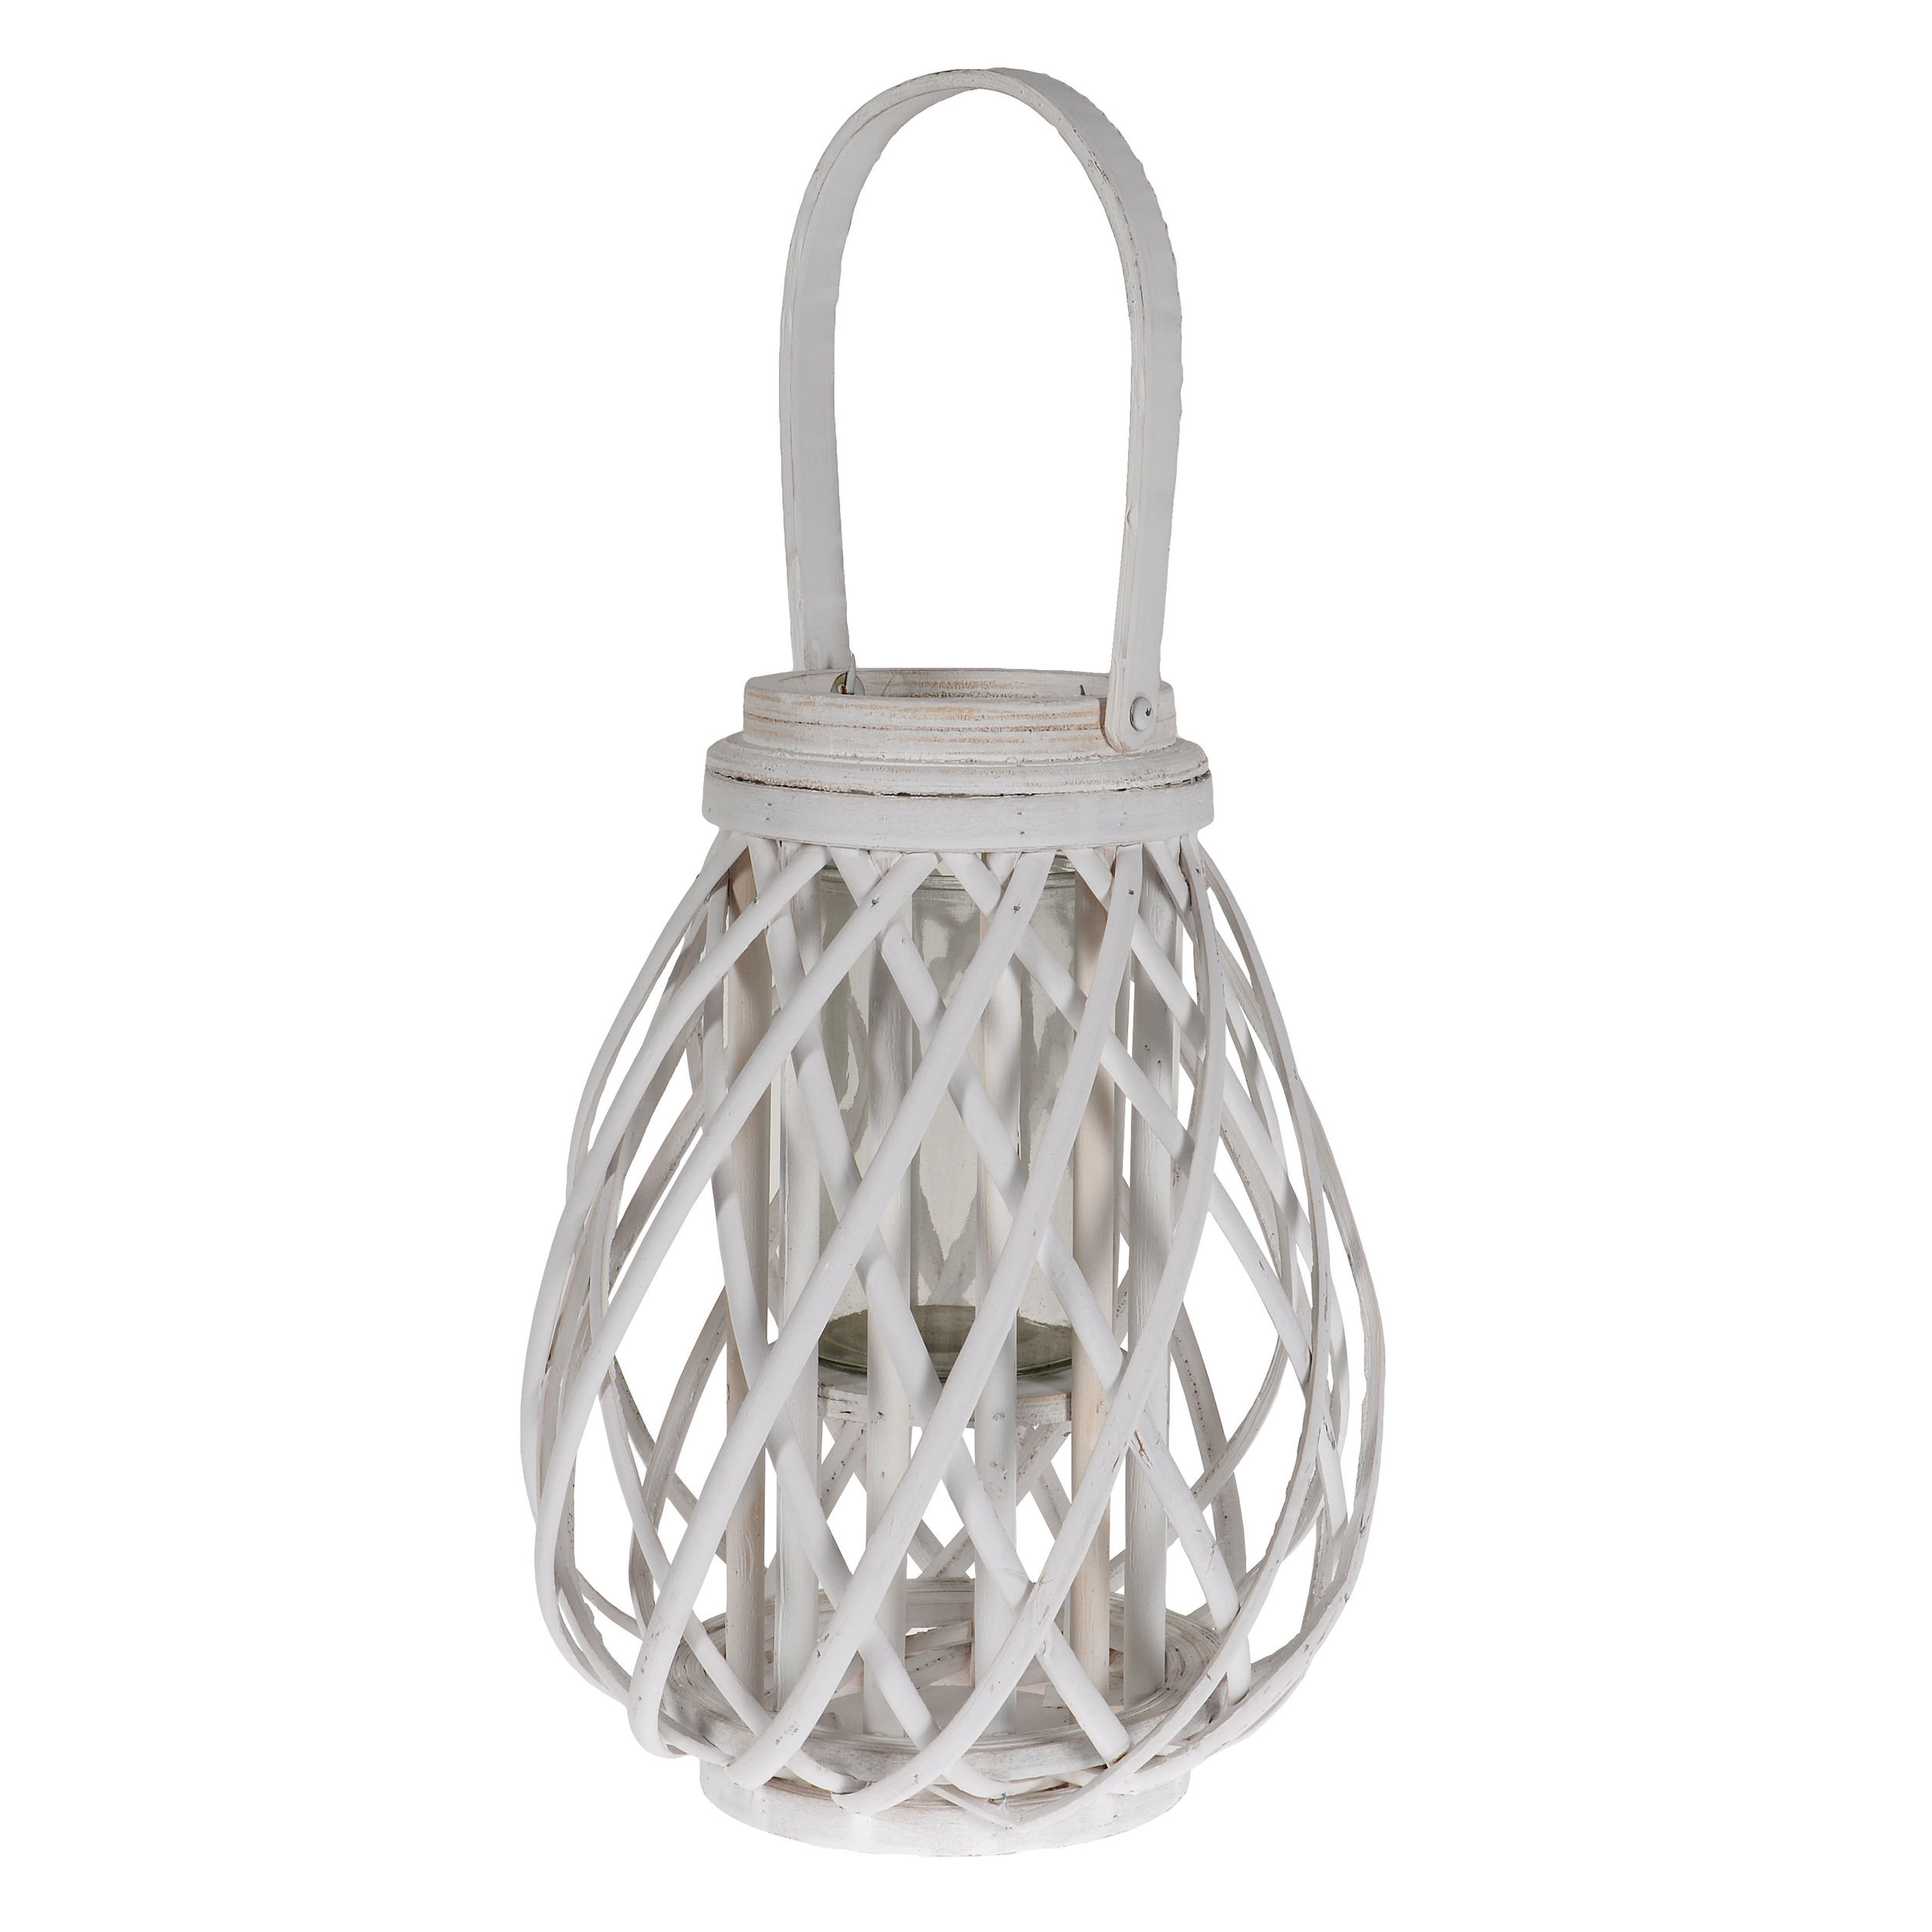 €28 WILLOW LANTERN IN WHITE COLOR 24Χ34/54